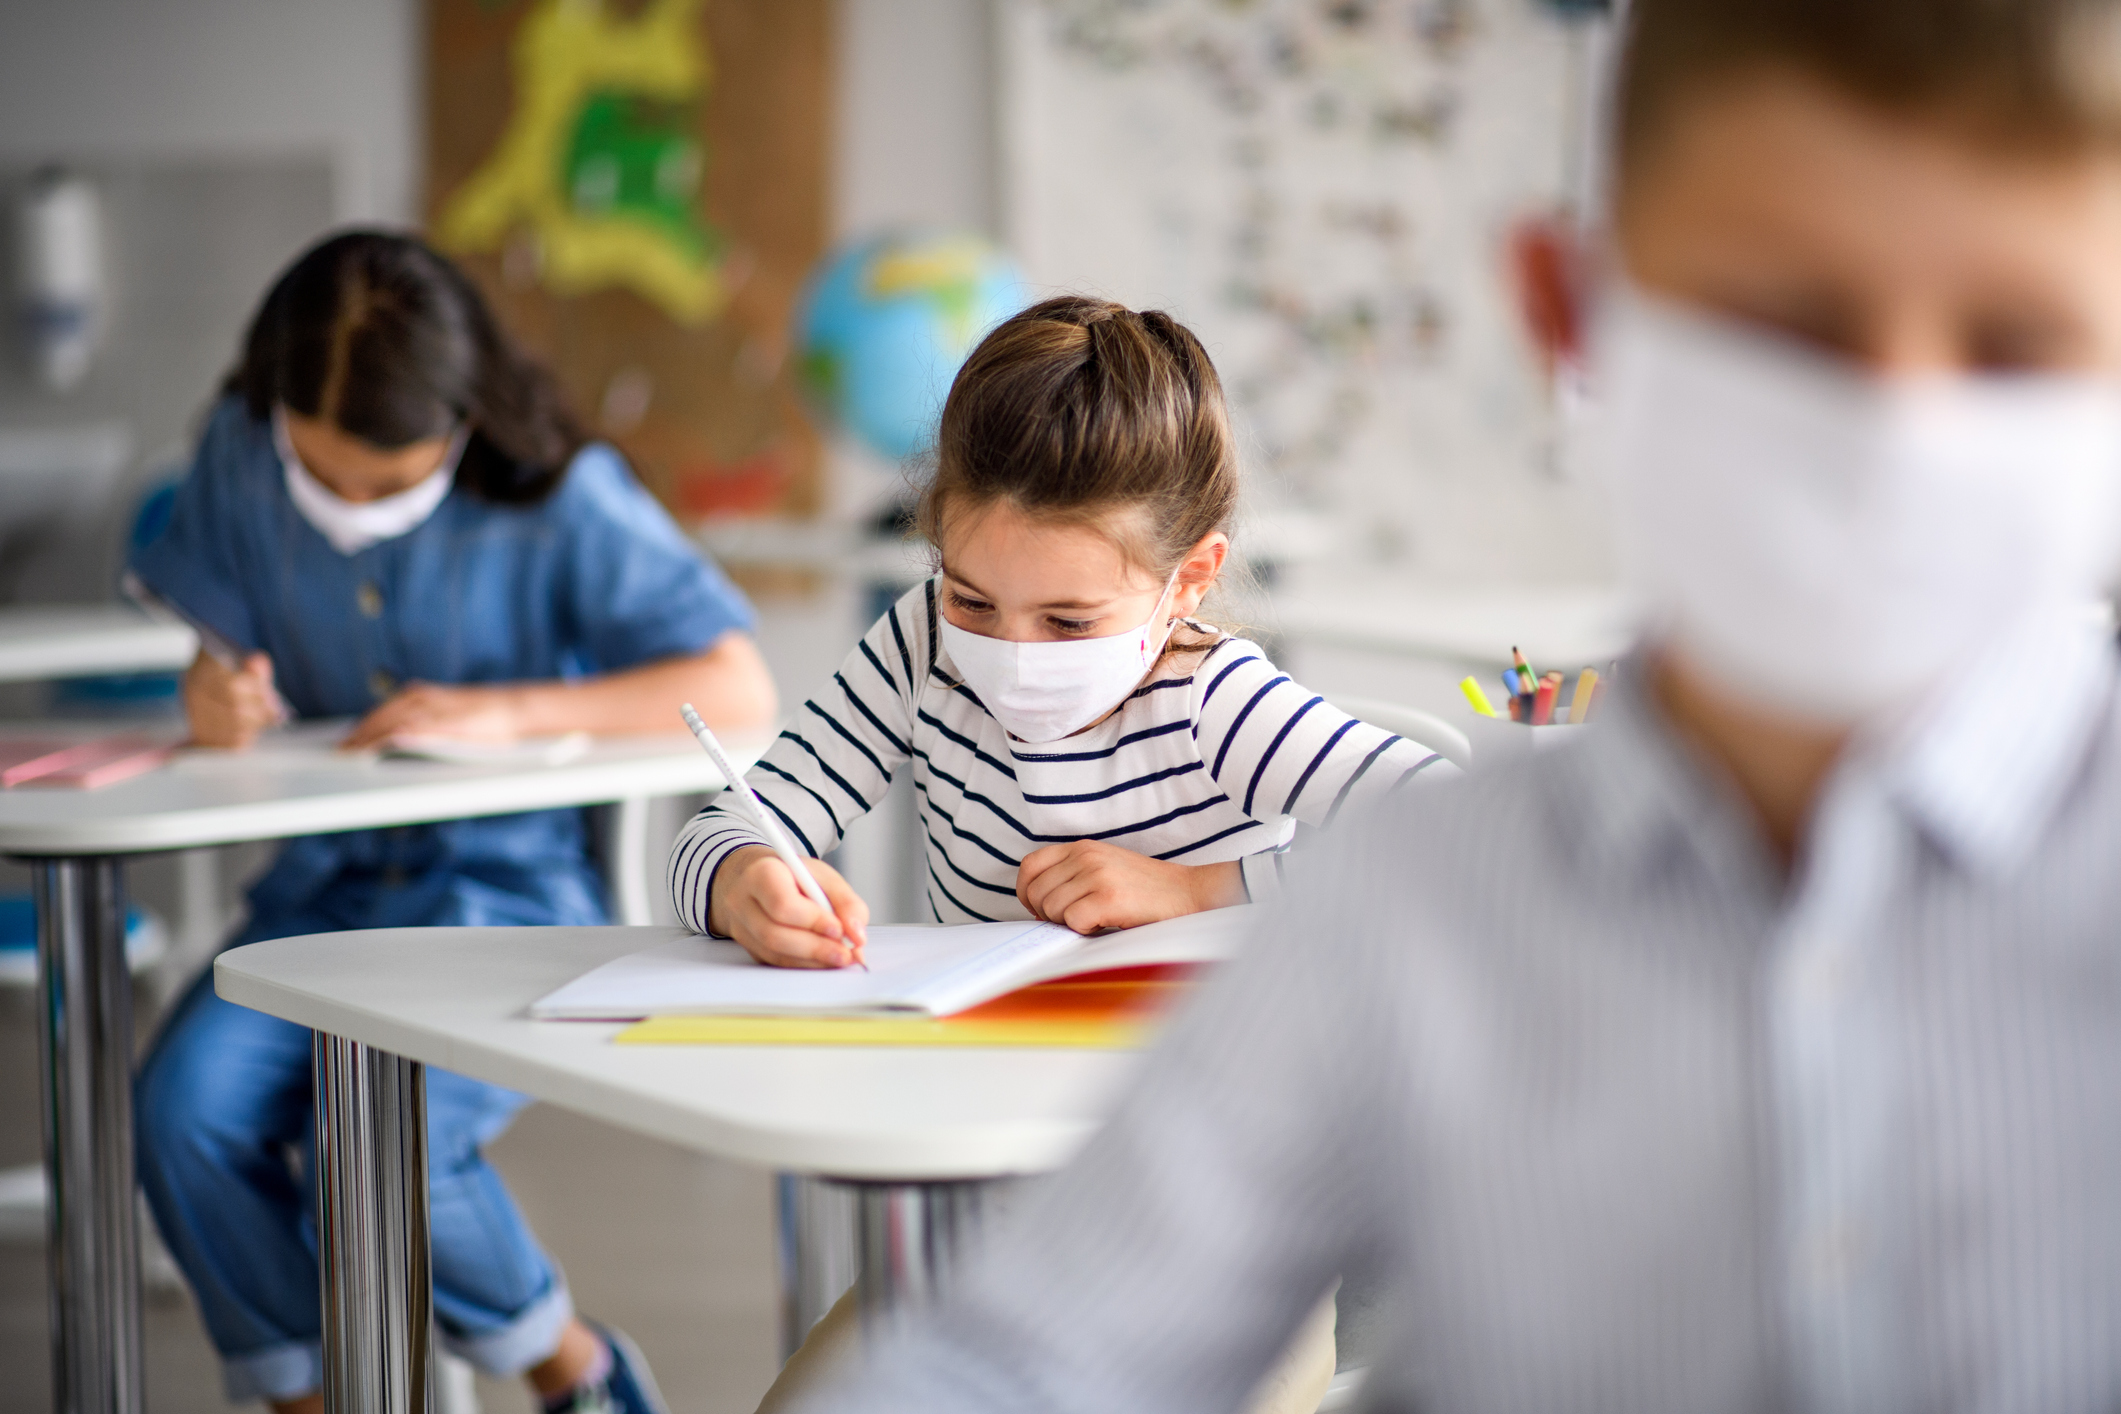 Children wearing face masks study at their desks in a classroom